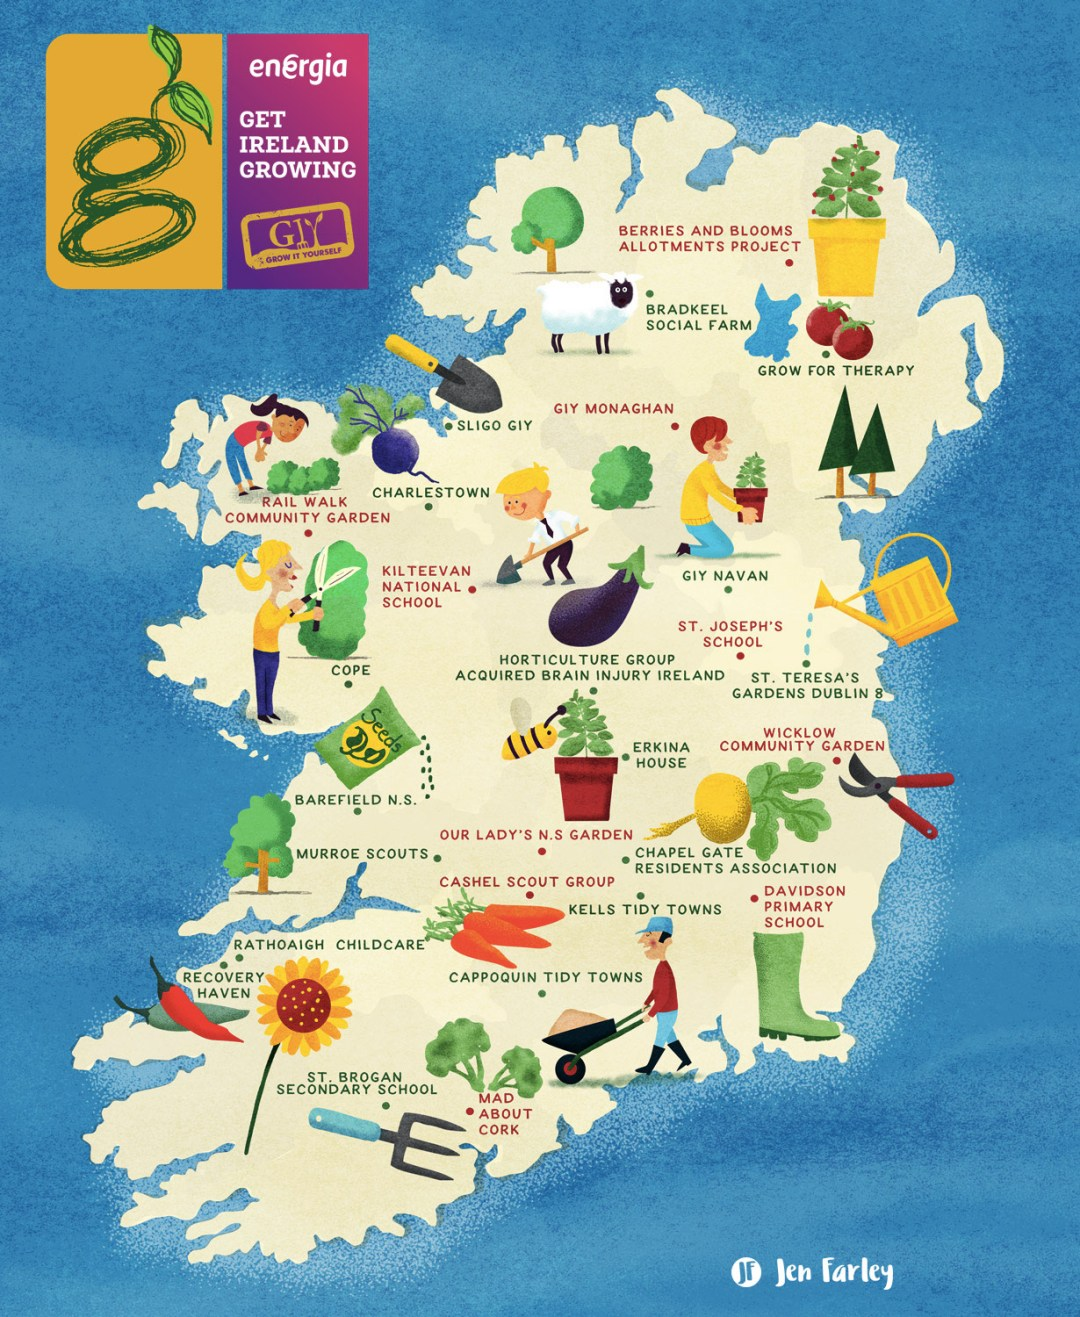 gardening map of ireland illustrated by jennifer farley